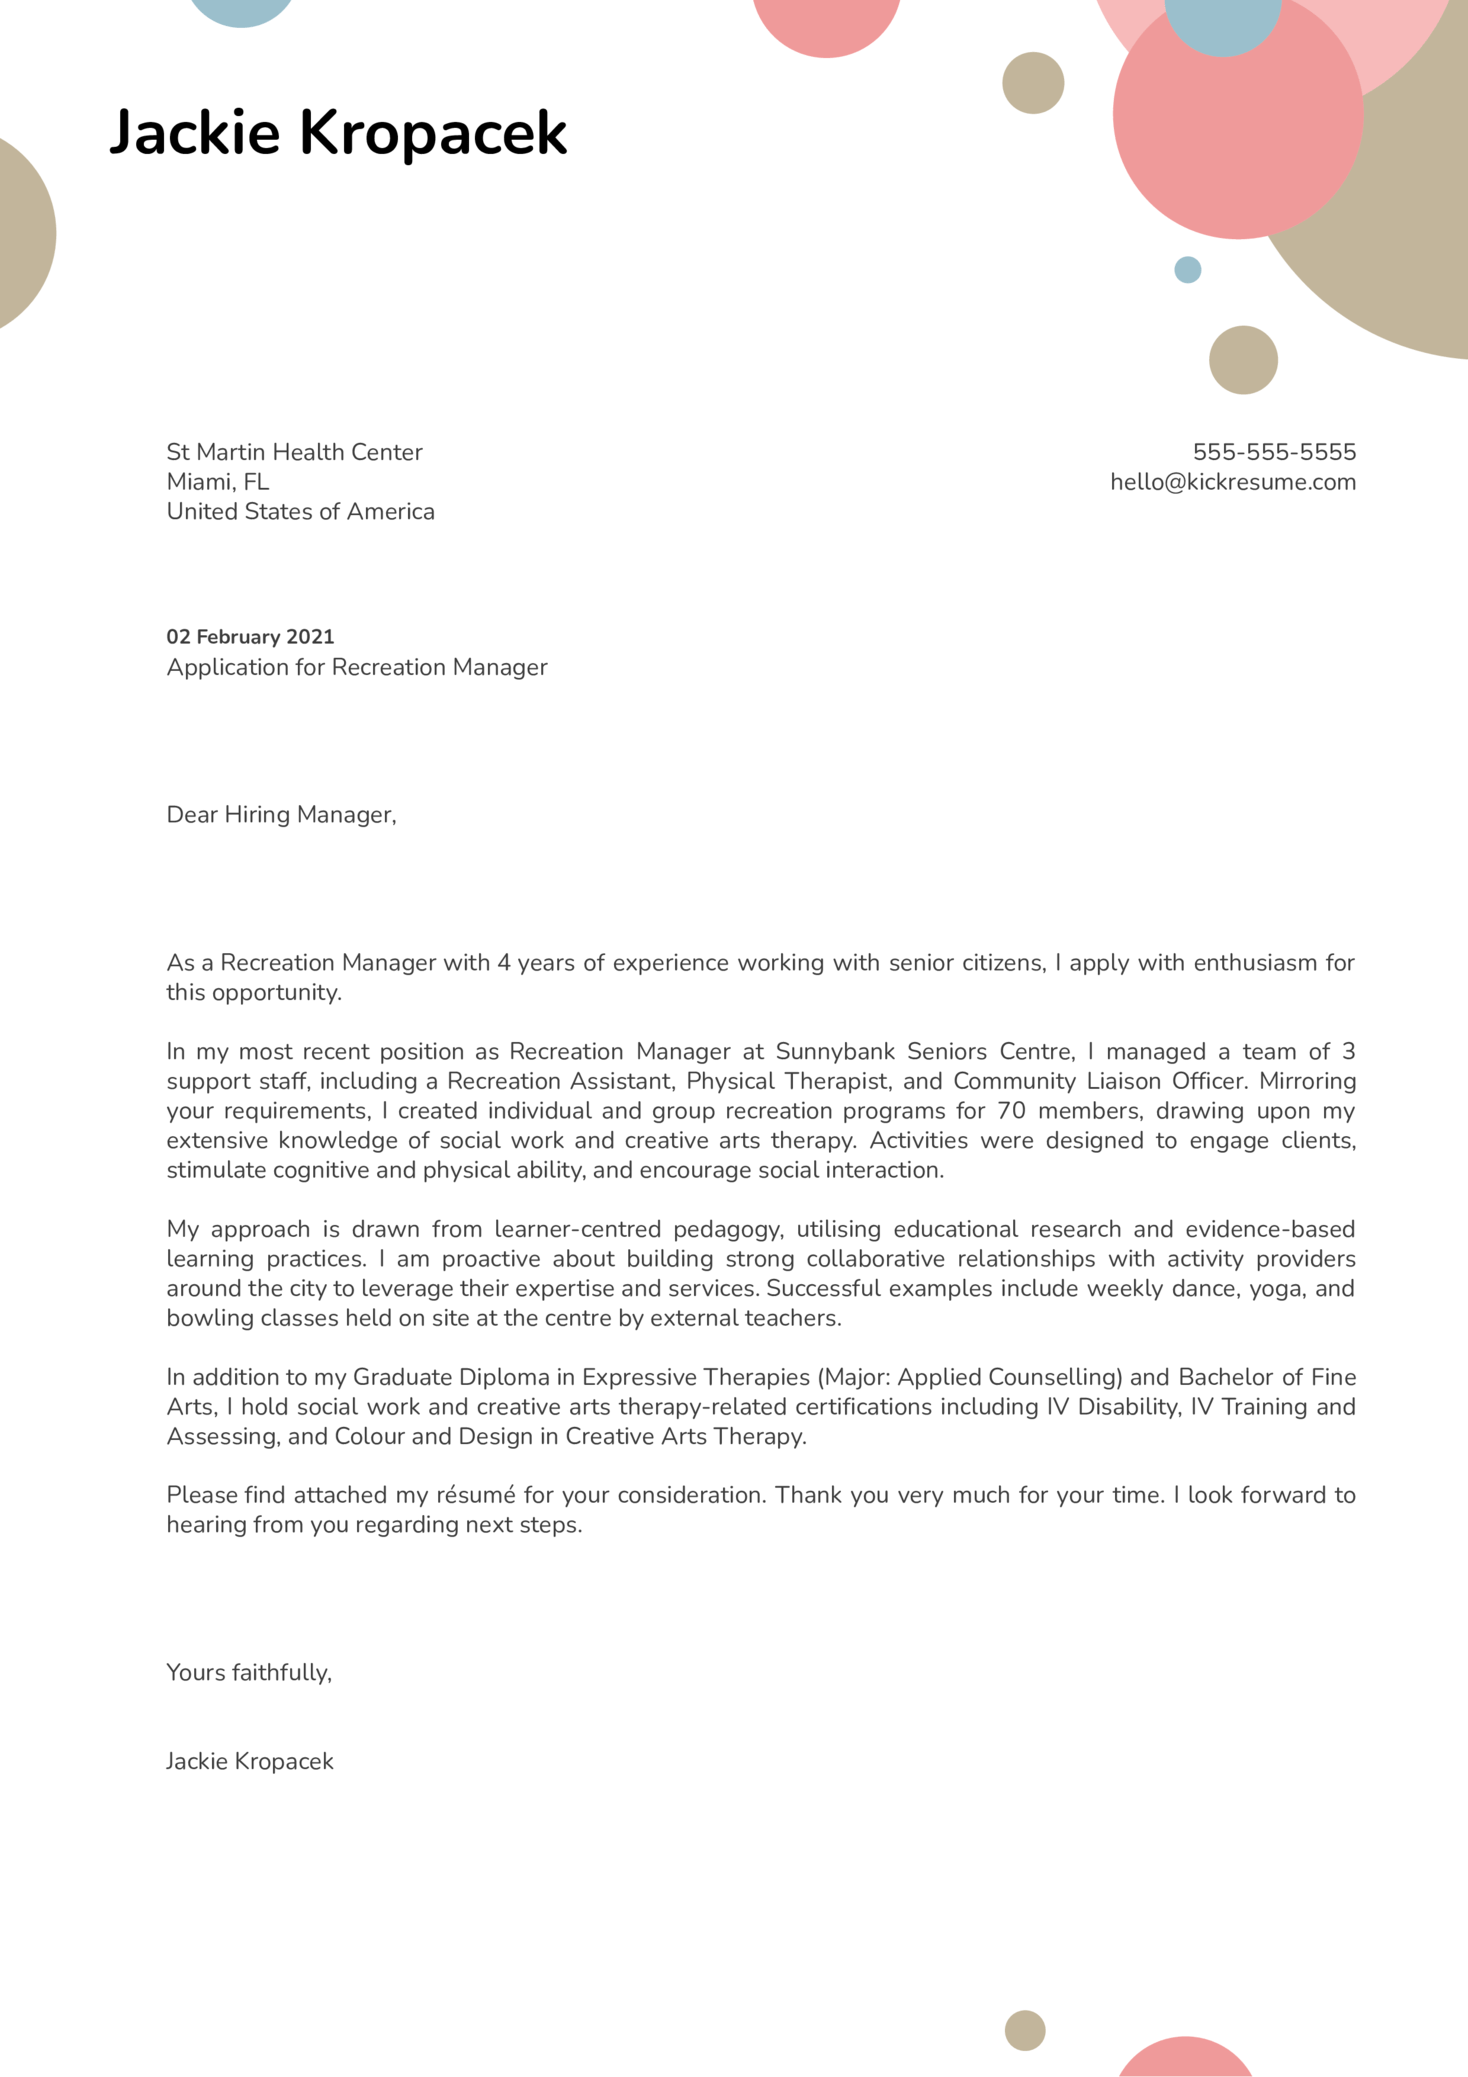 Recreation Manager Cover Letter Template